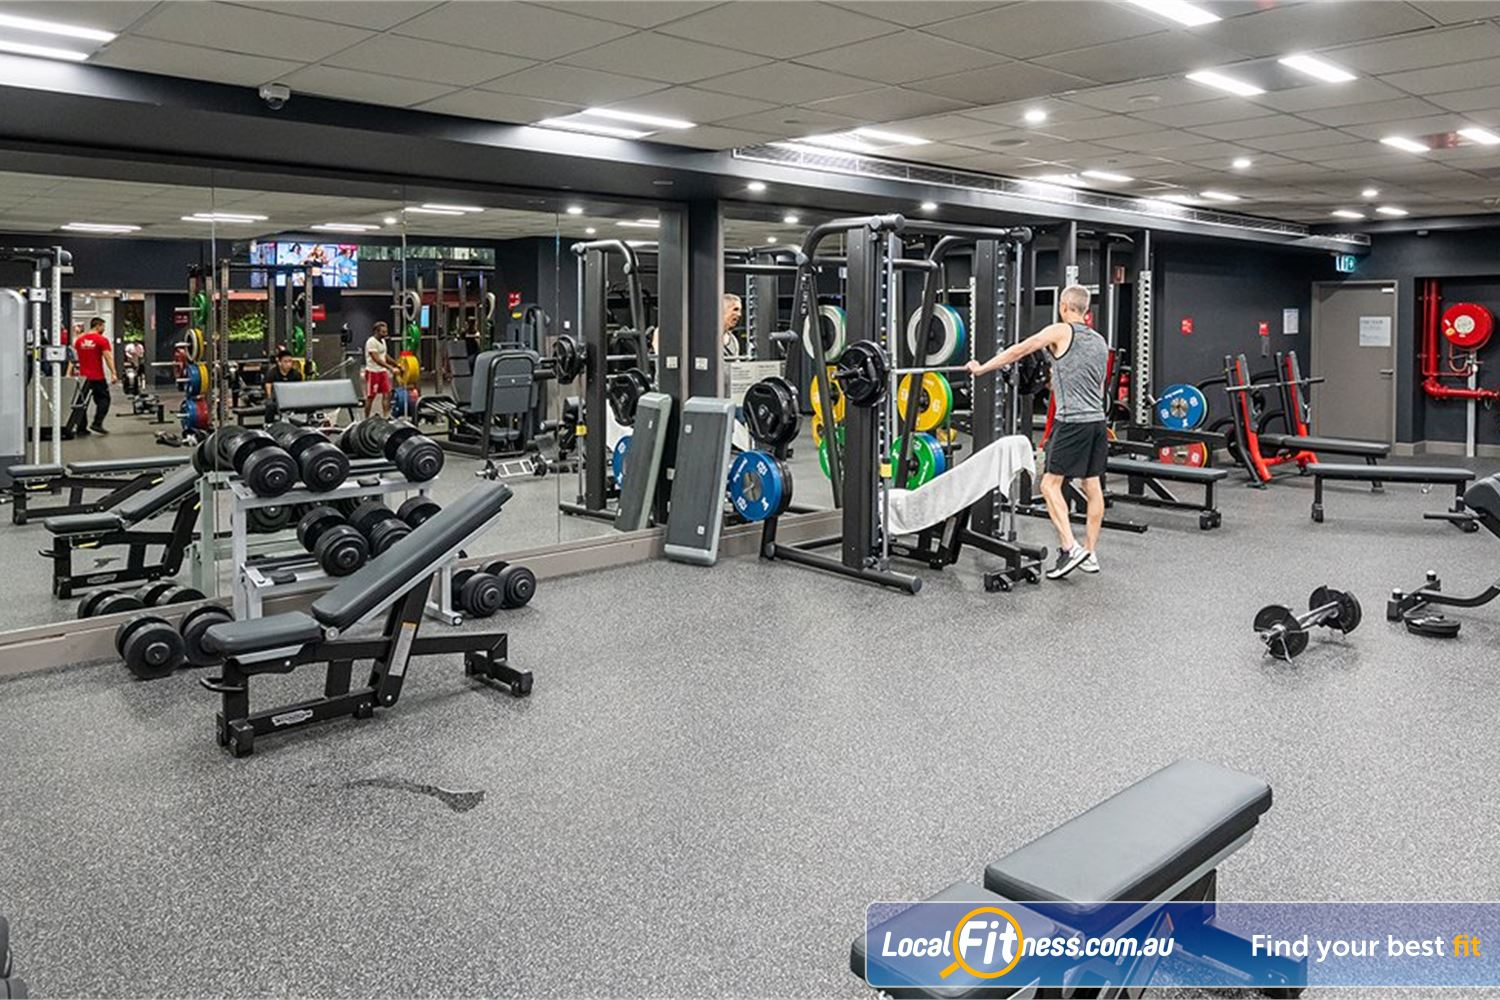 Fitness First Platinum Pitt St Near Alexandria Mc Our Sydney gym provides a state of the art strength training facility.